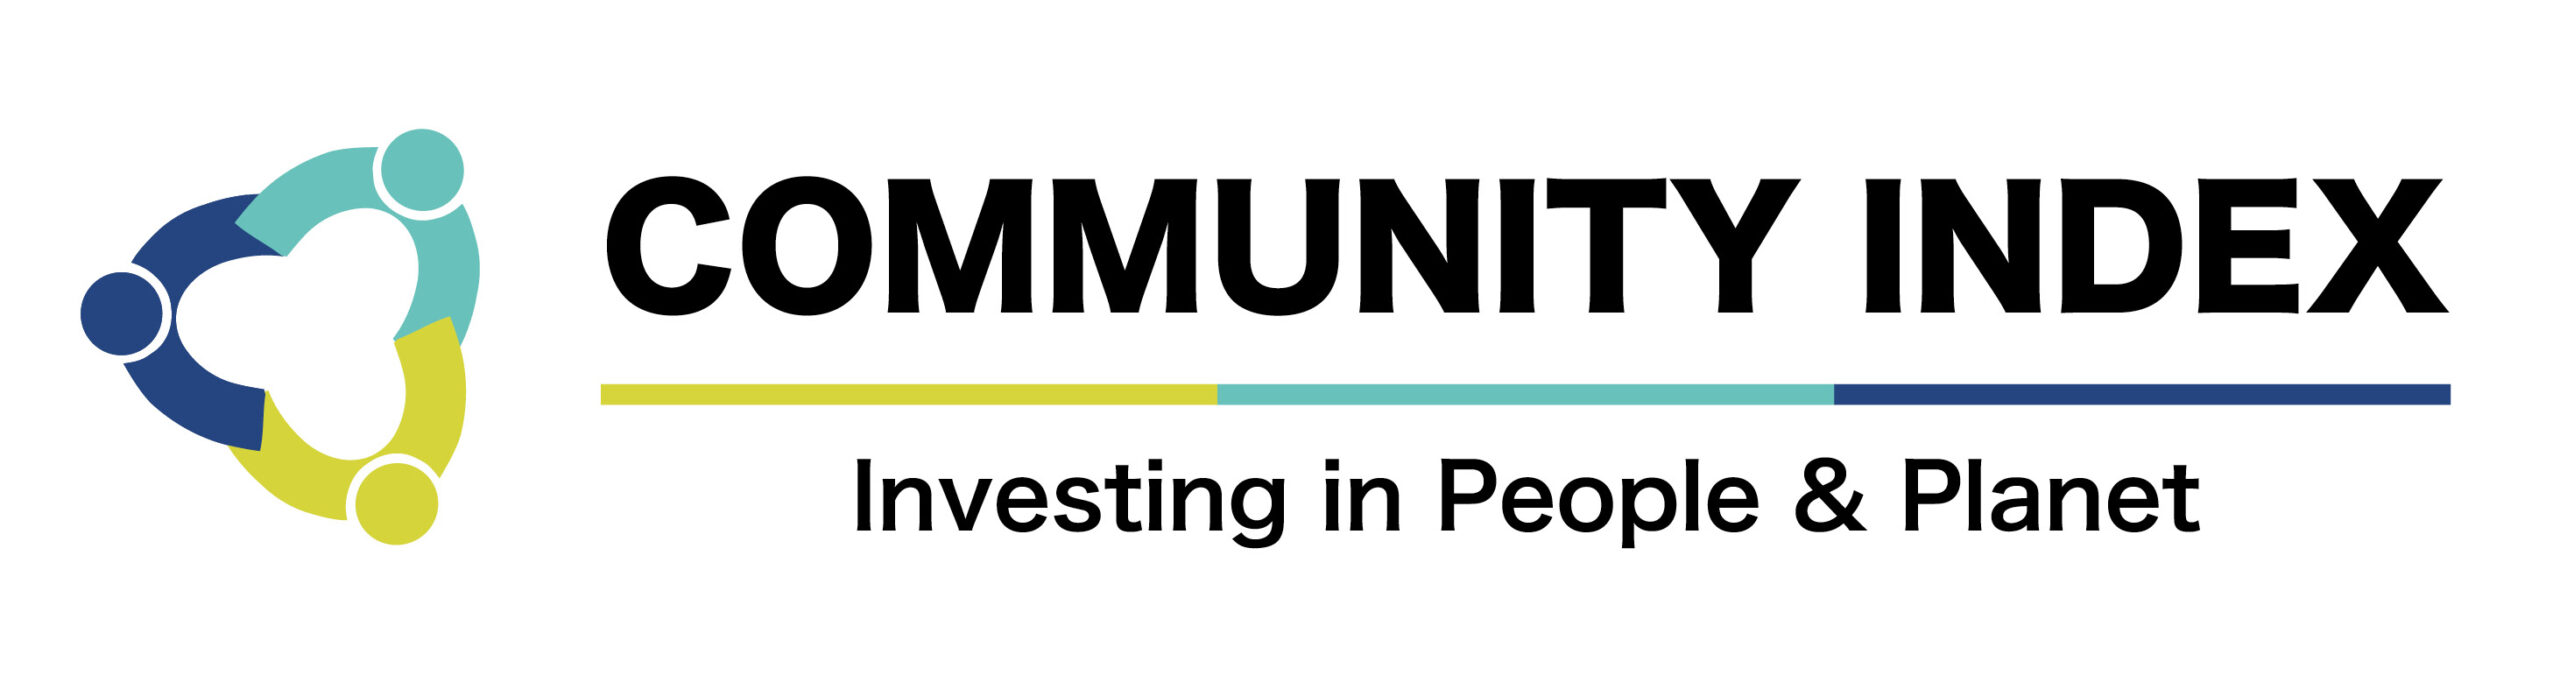 Community Index